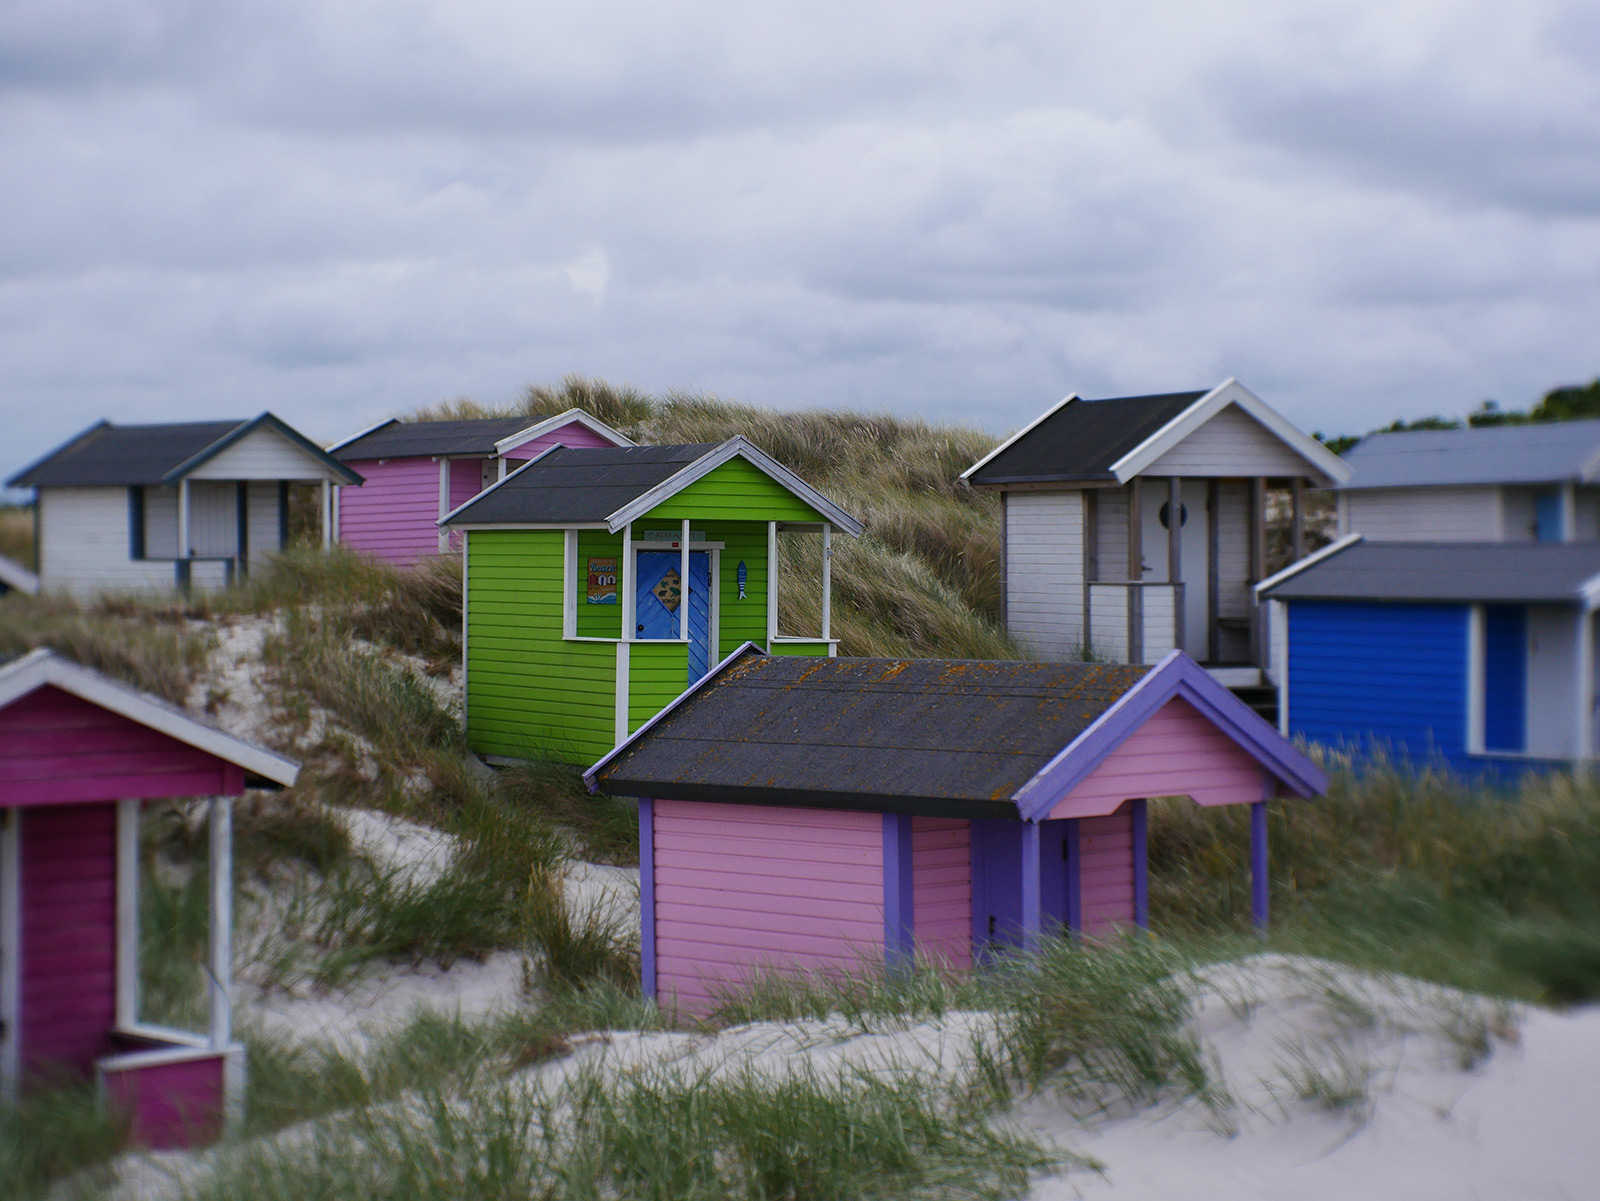 Beach huts in Skanor.